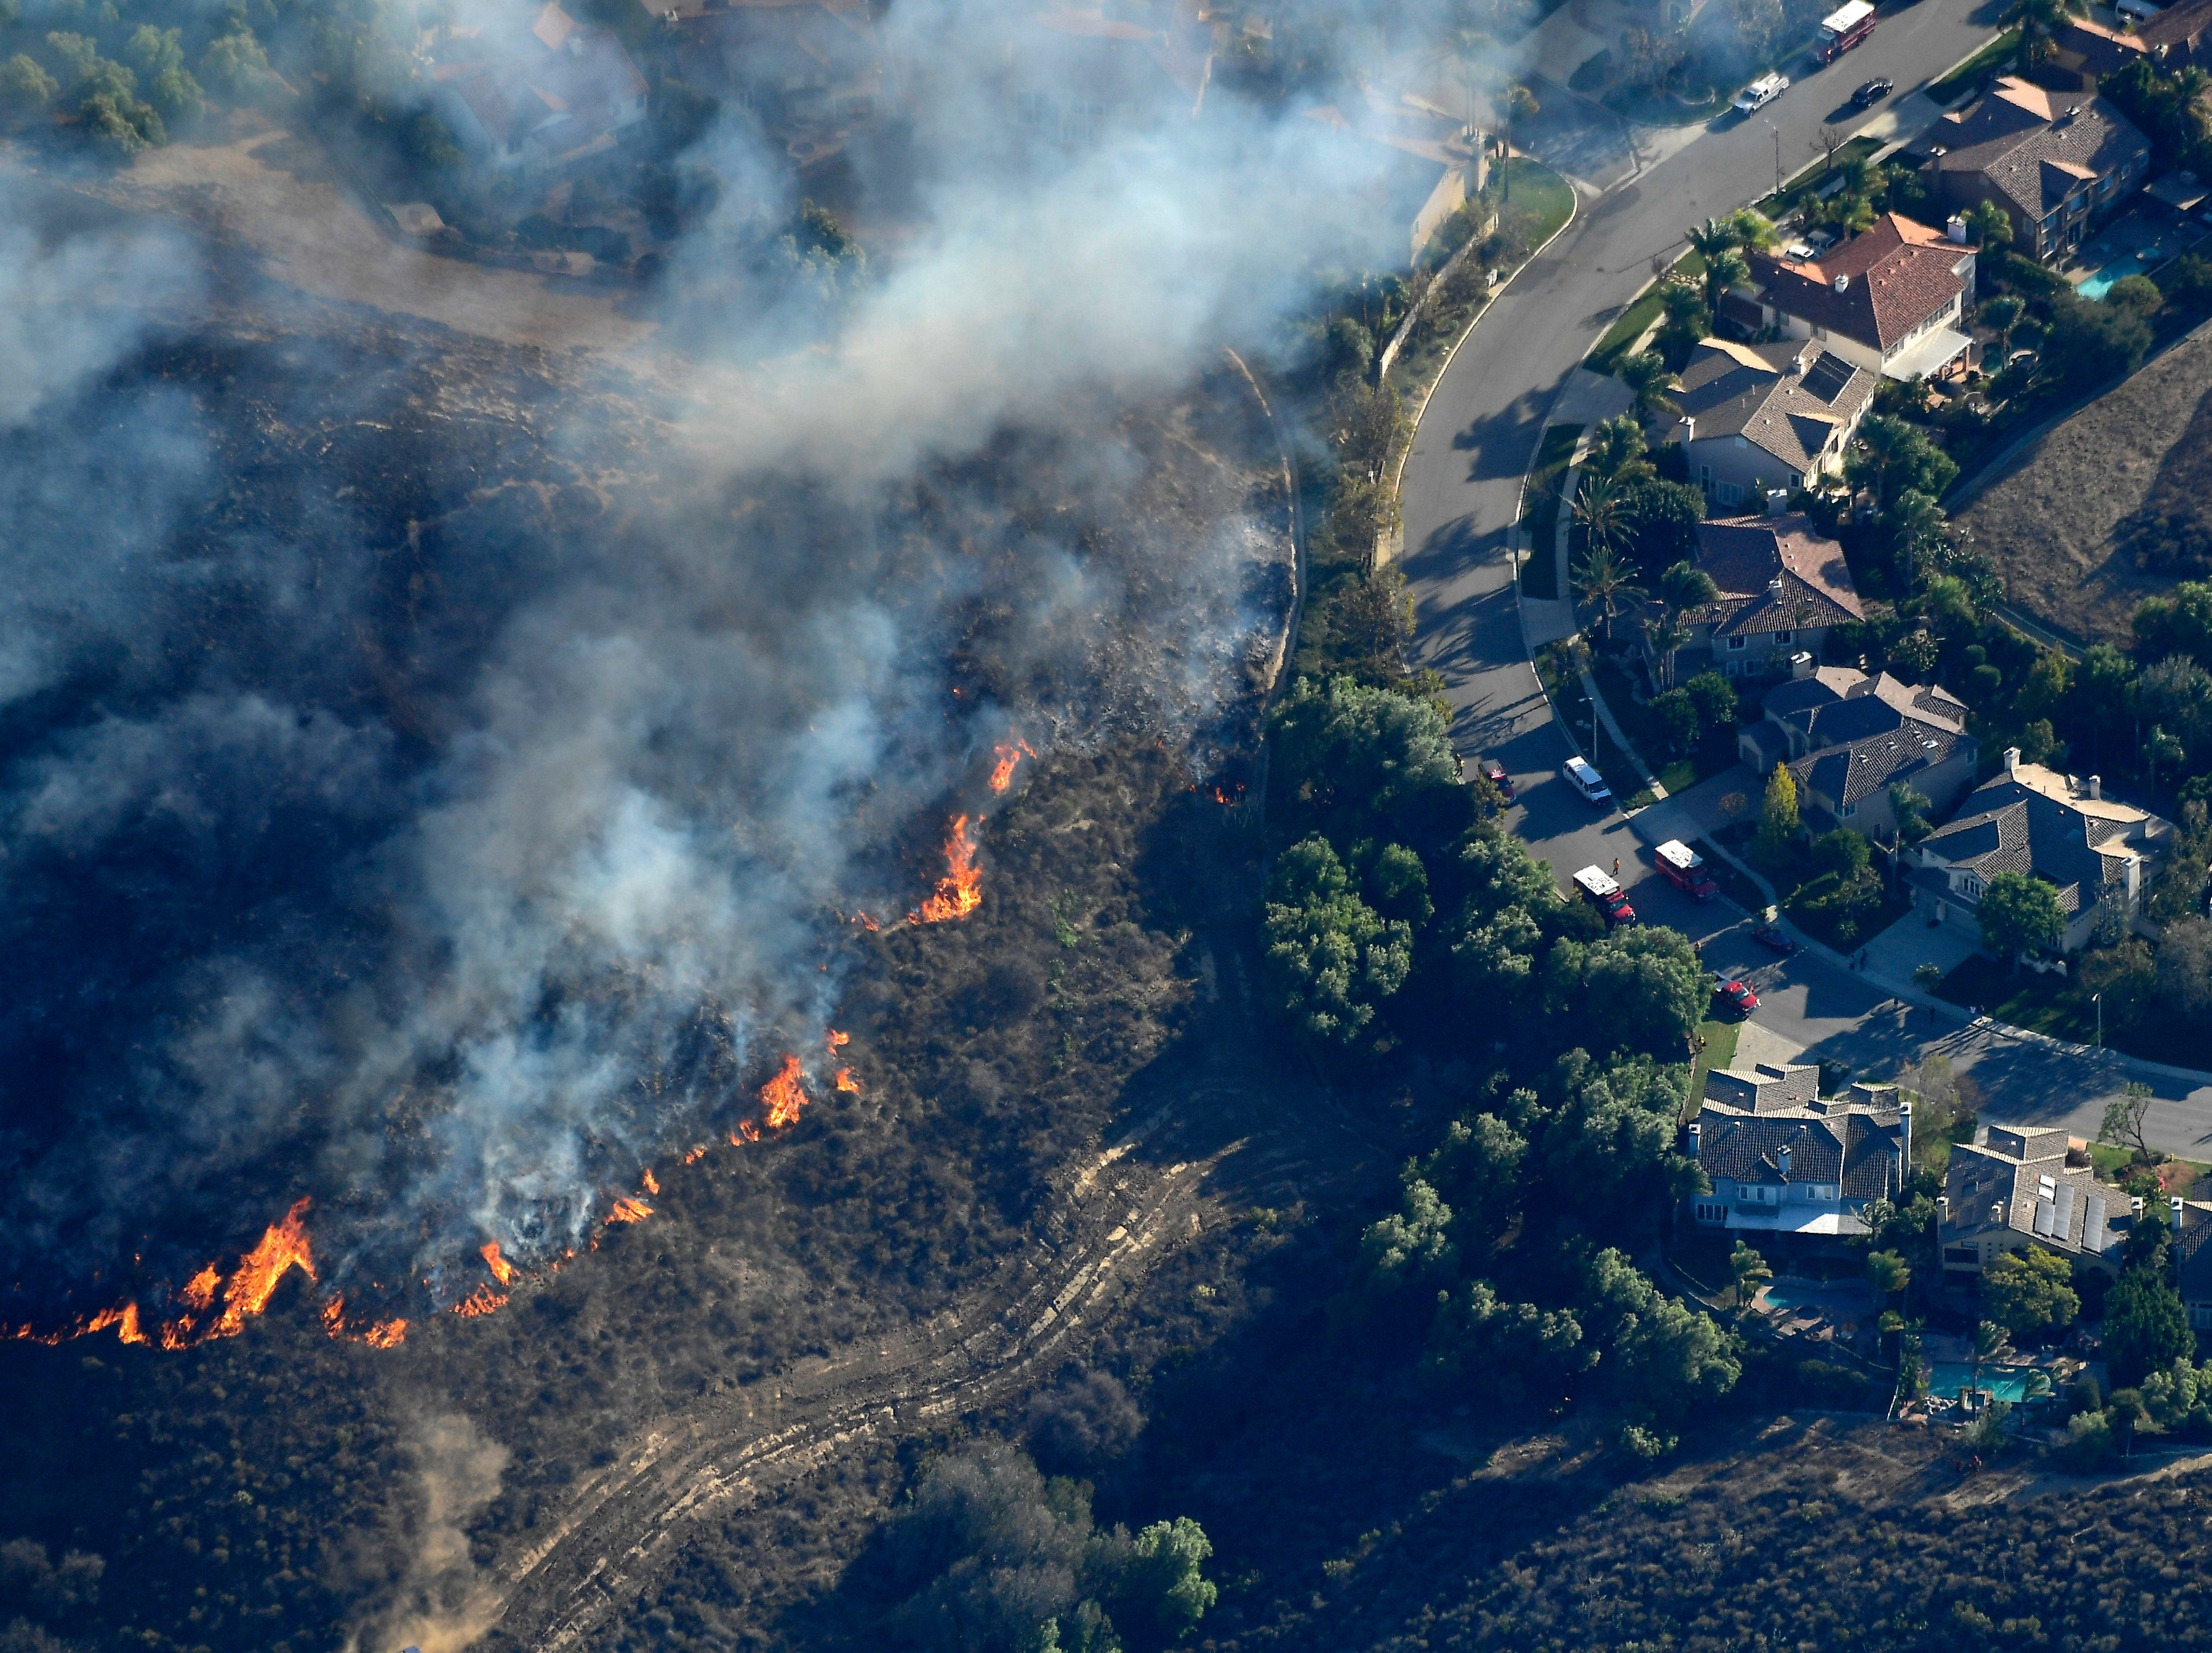 The Woolsey Fire burns toward homes Friday in Calabasas on its way to Malibu after starting near Simi Valley.